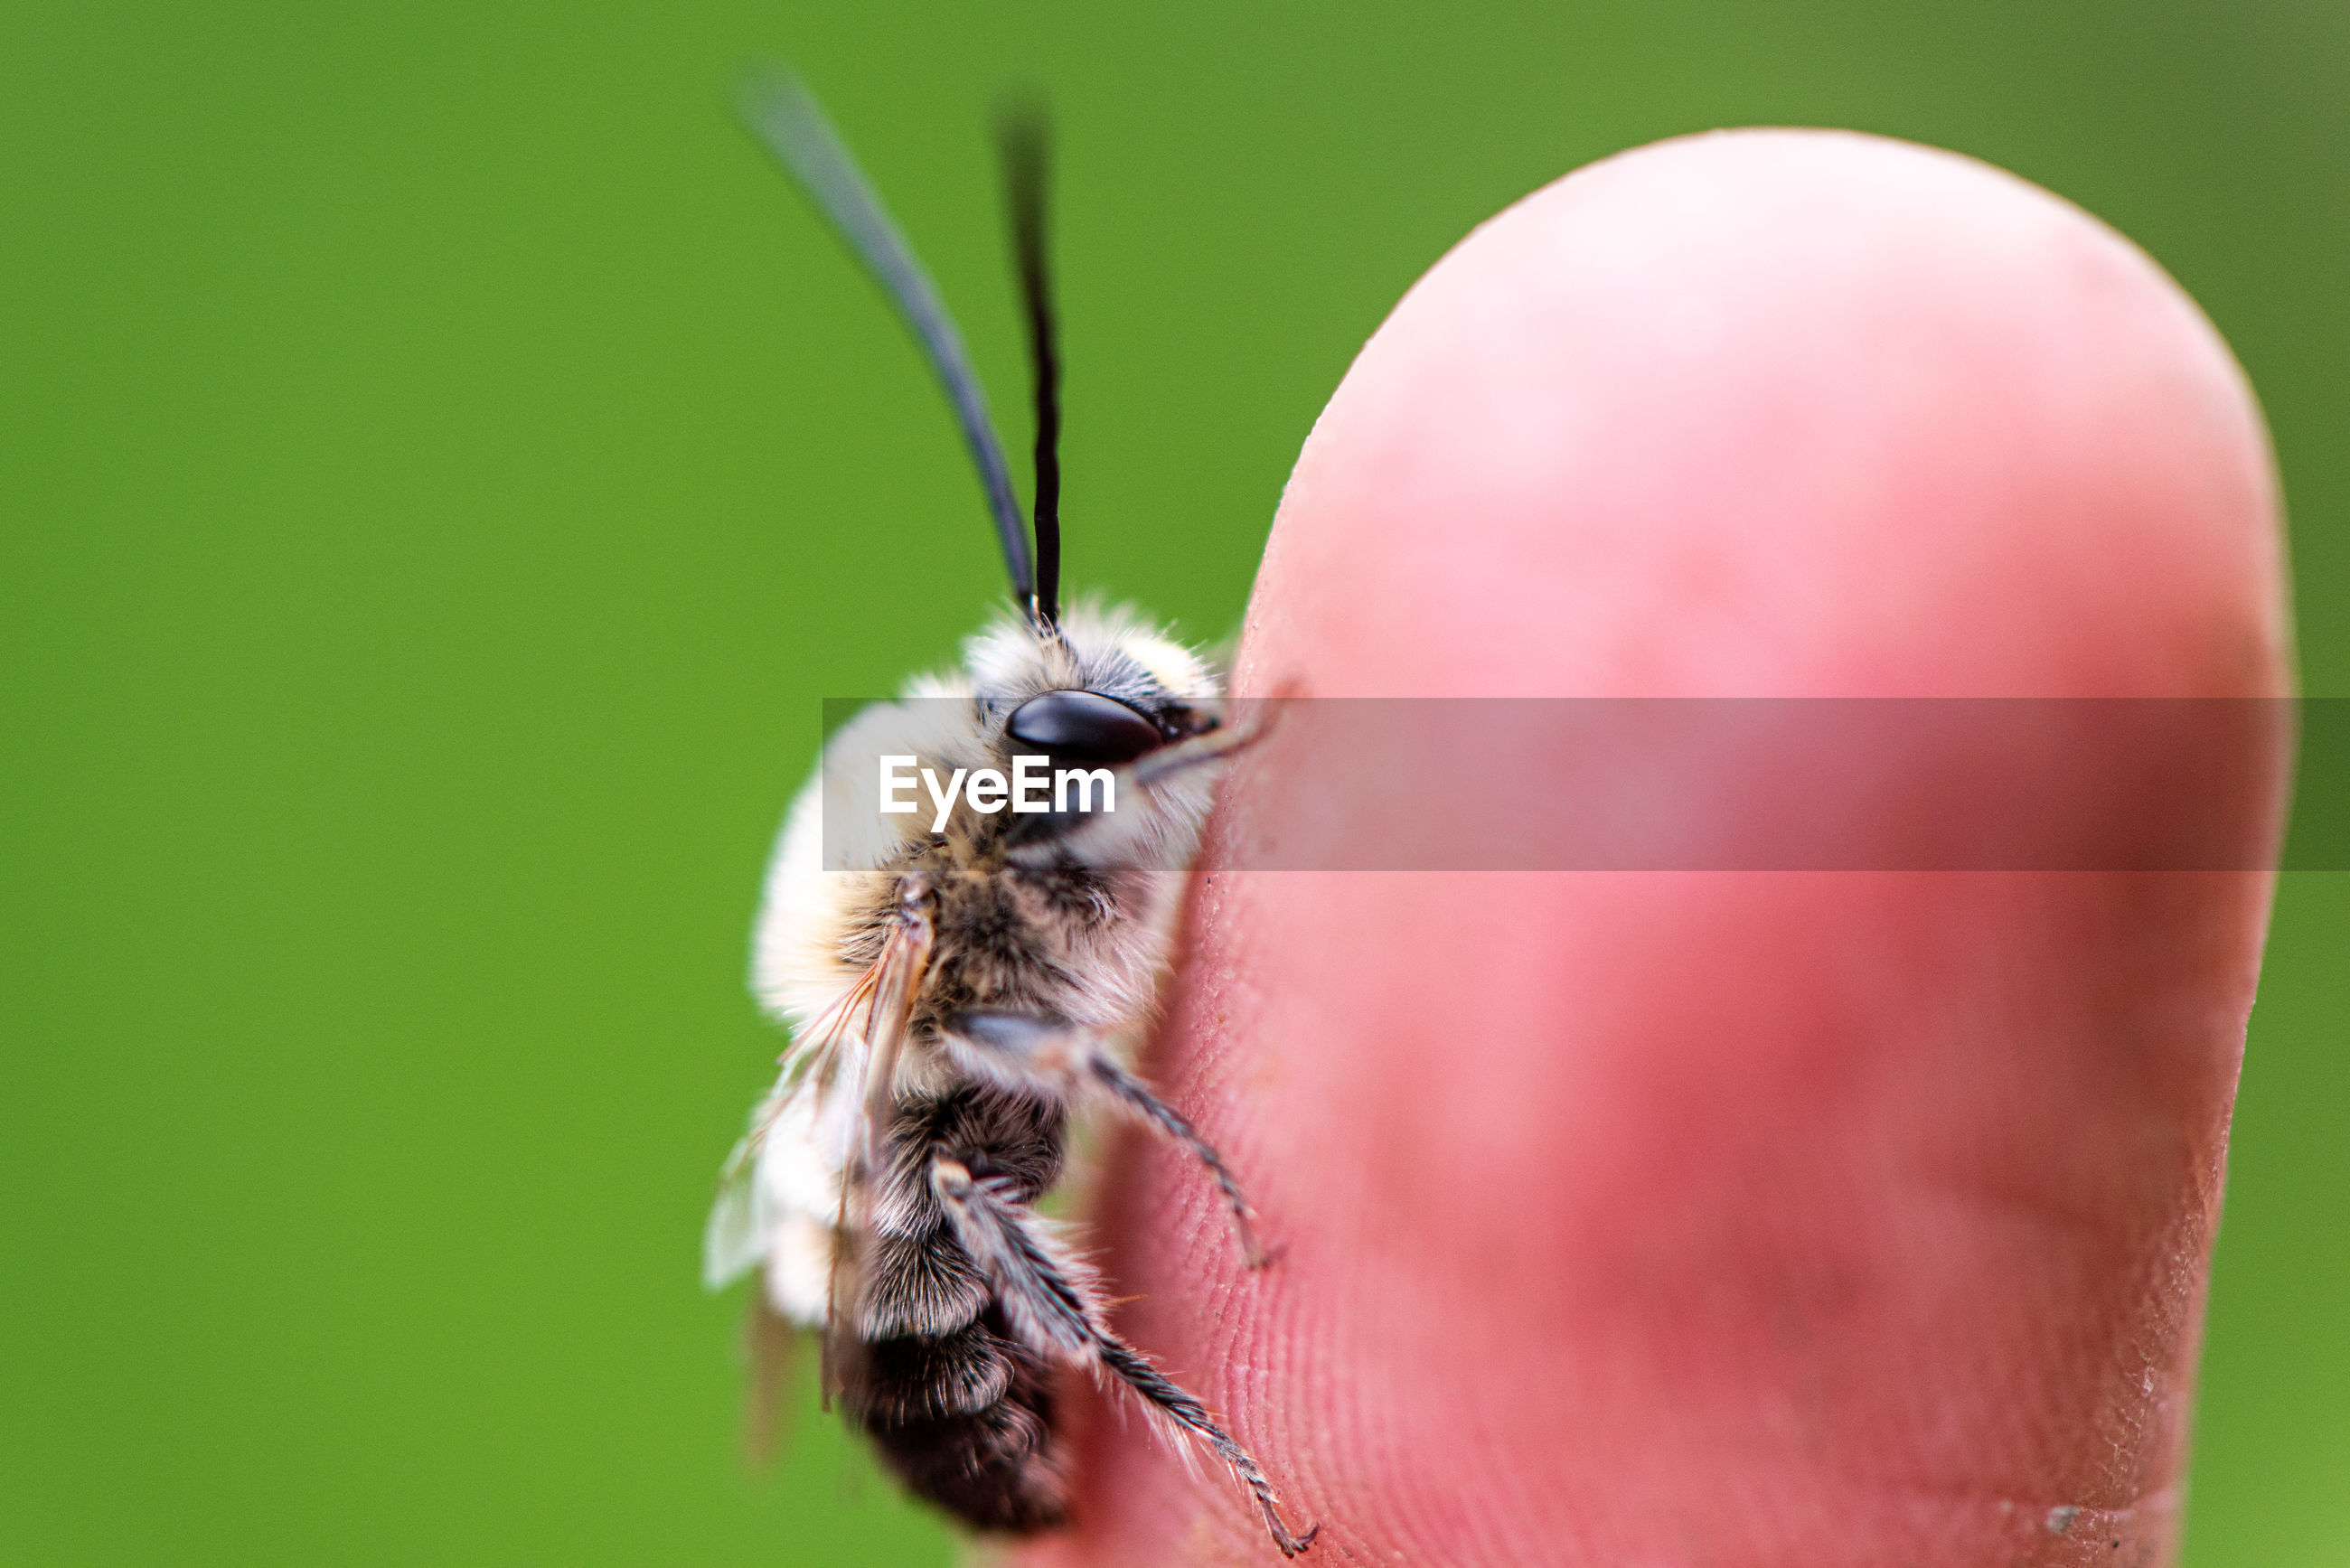 Close-up of bee on human finger